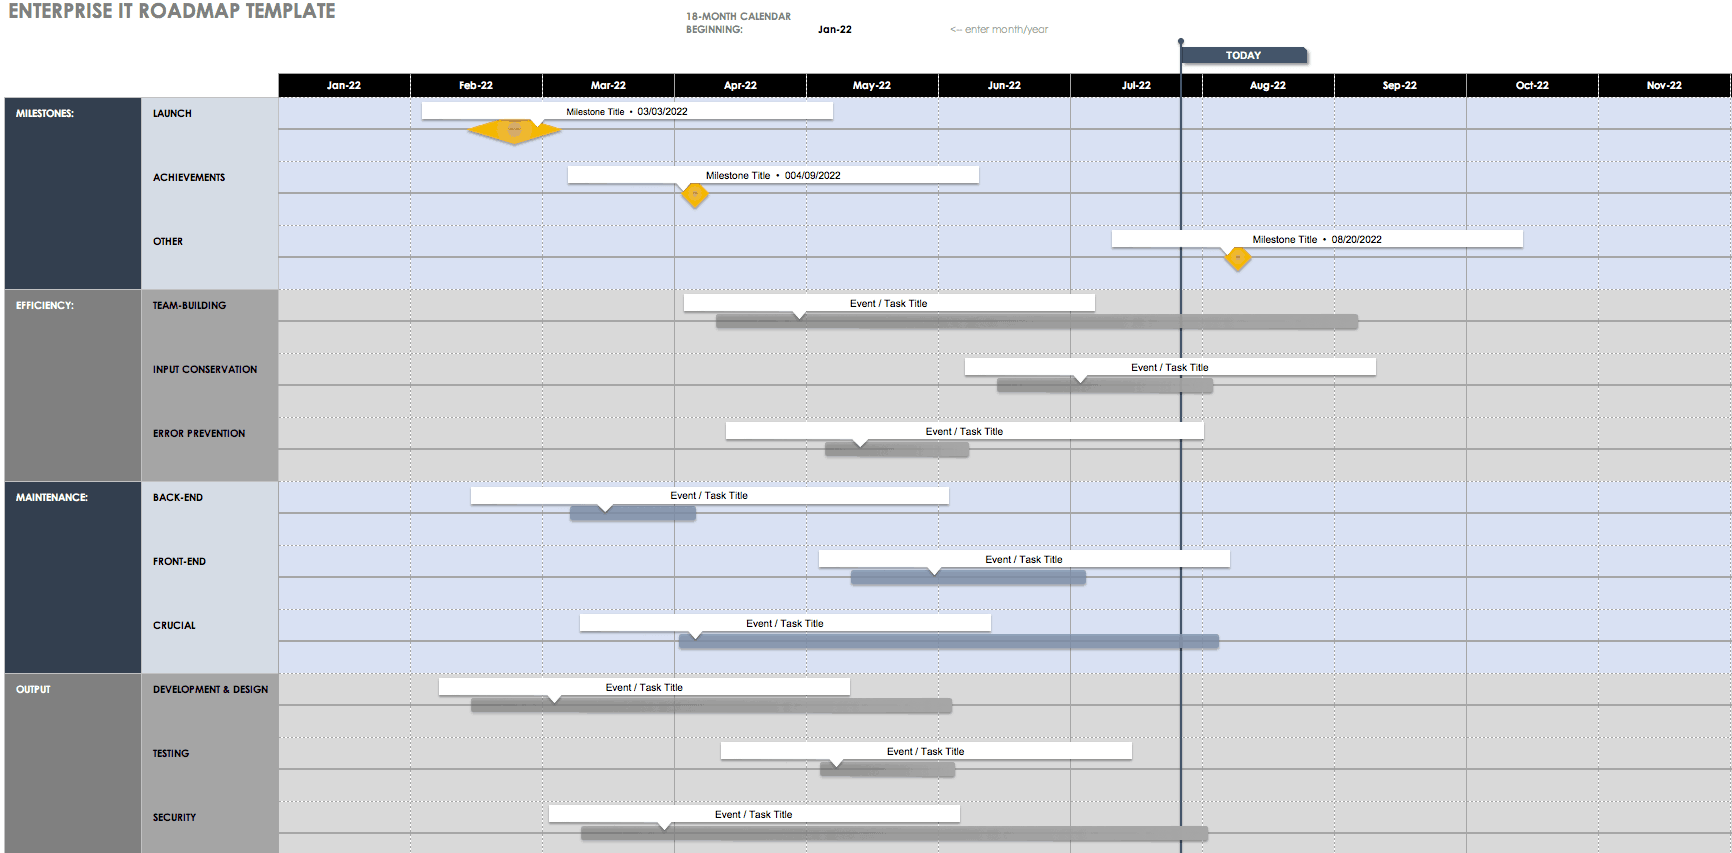 Enterprise IT Roadmap Template